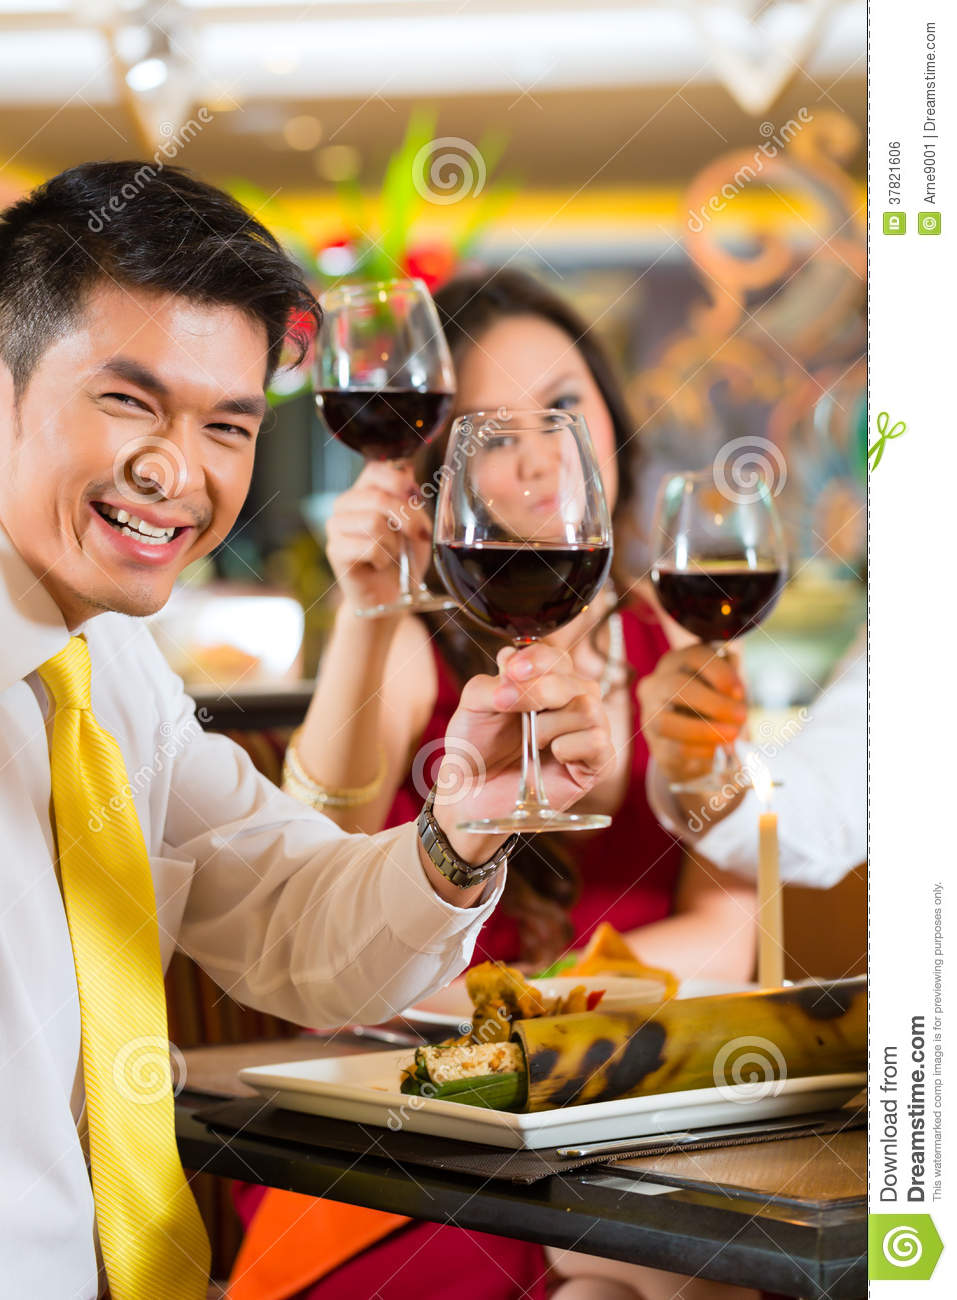 ... during dinner or lunch in a elegant restaurant with red wine glasses